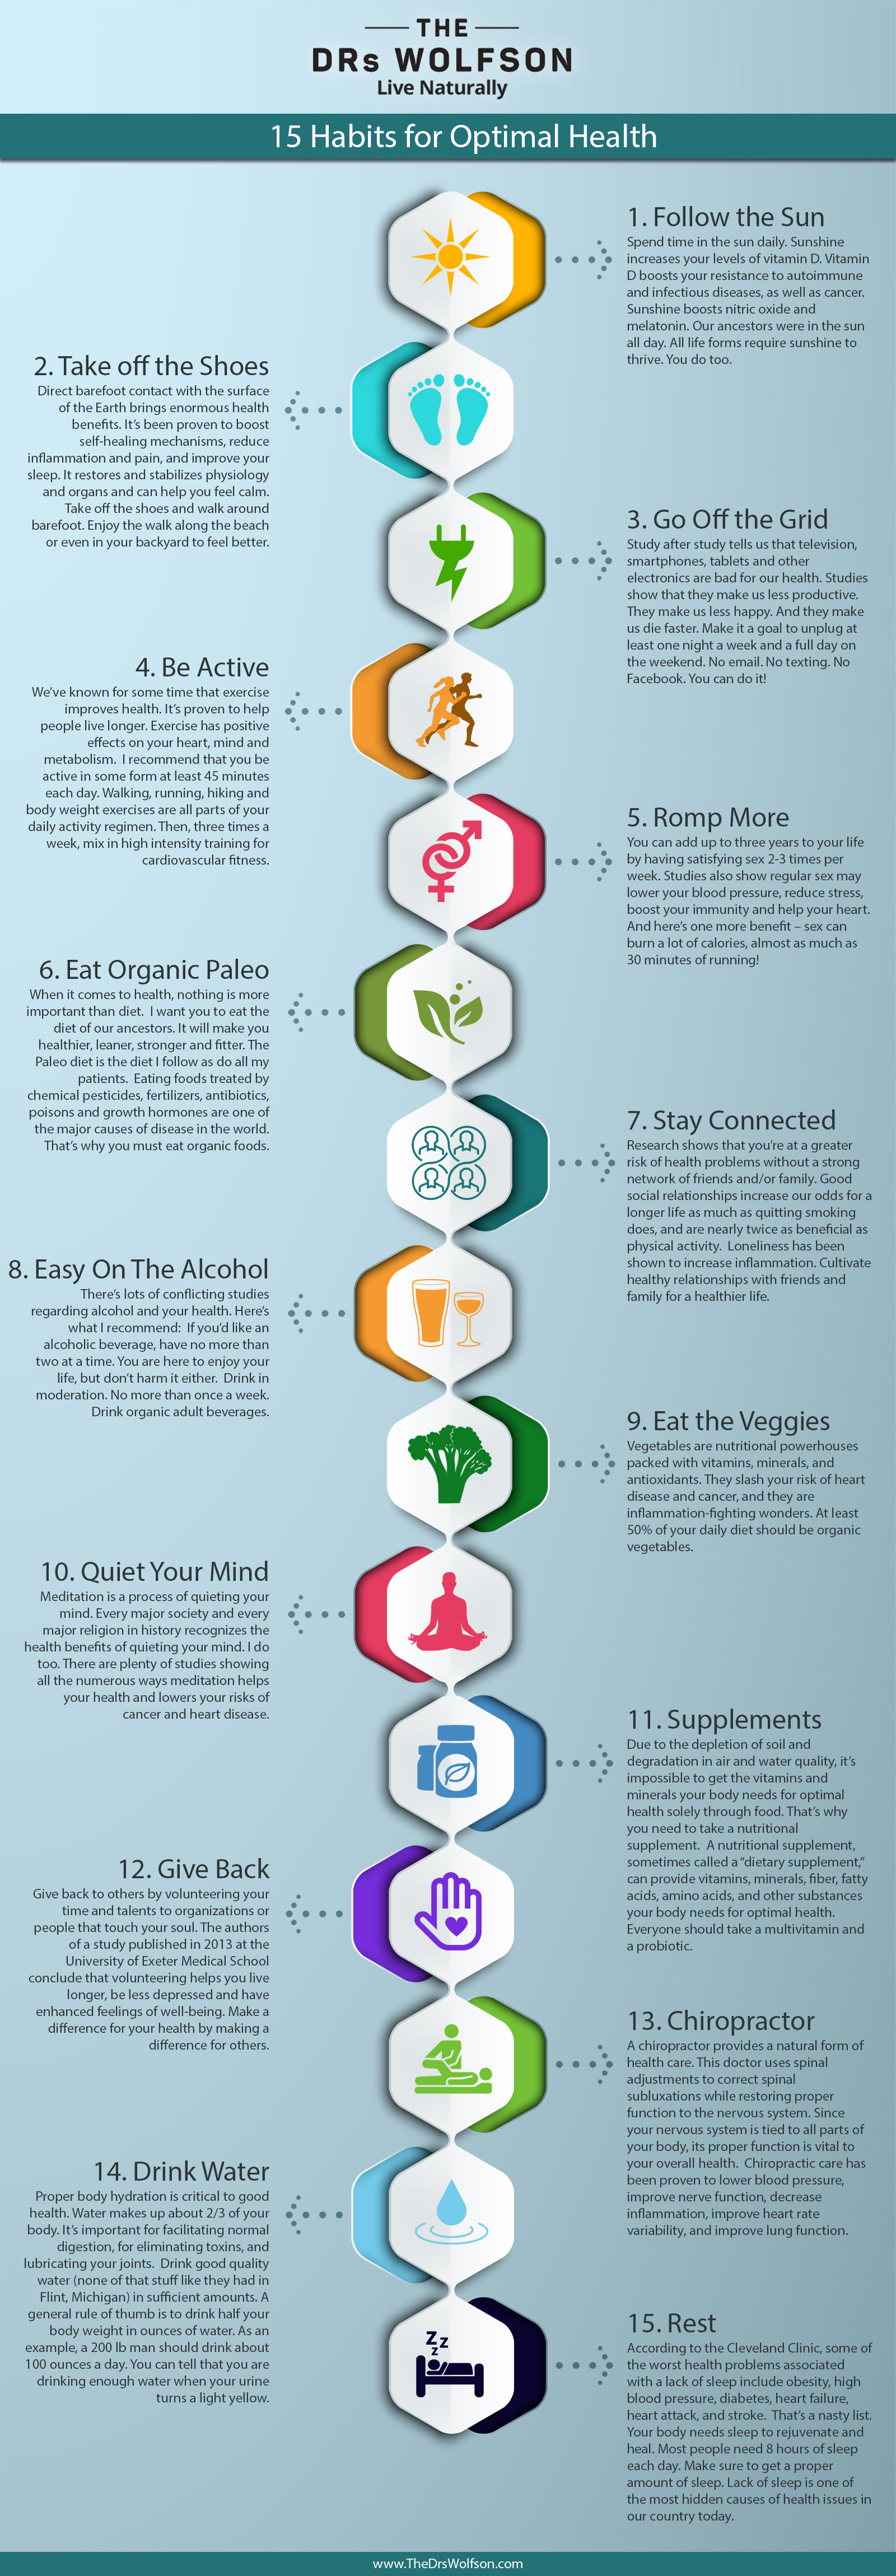 15 Habits for Optimal Health